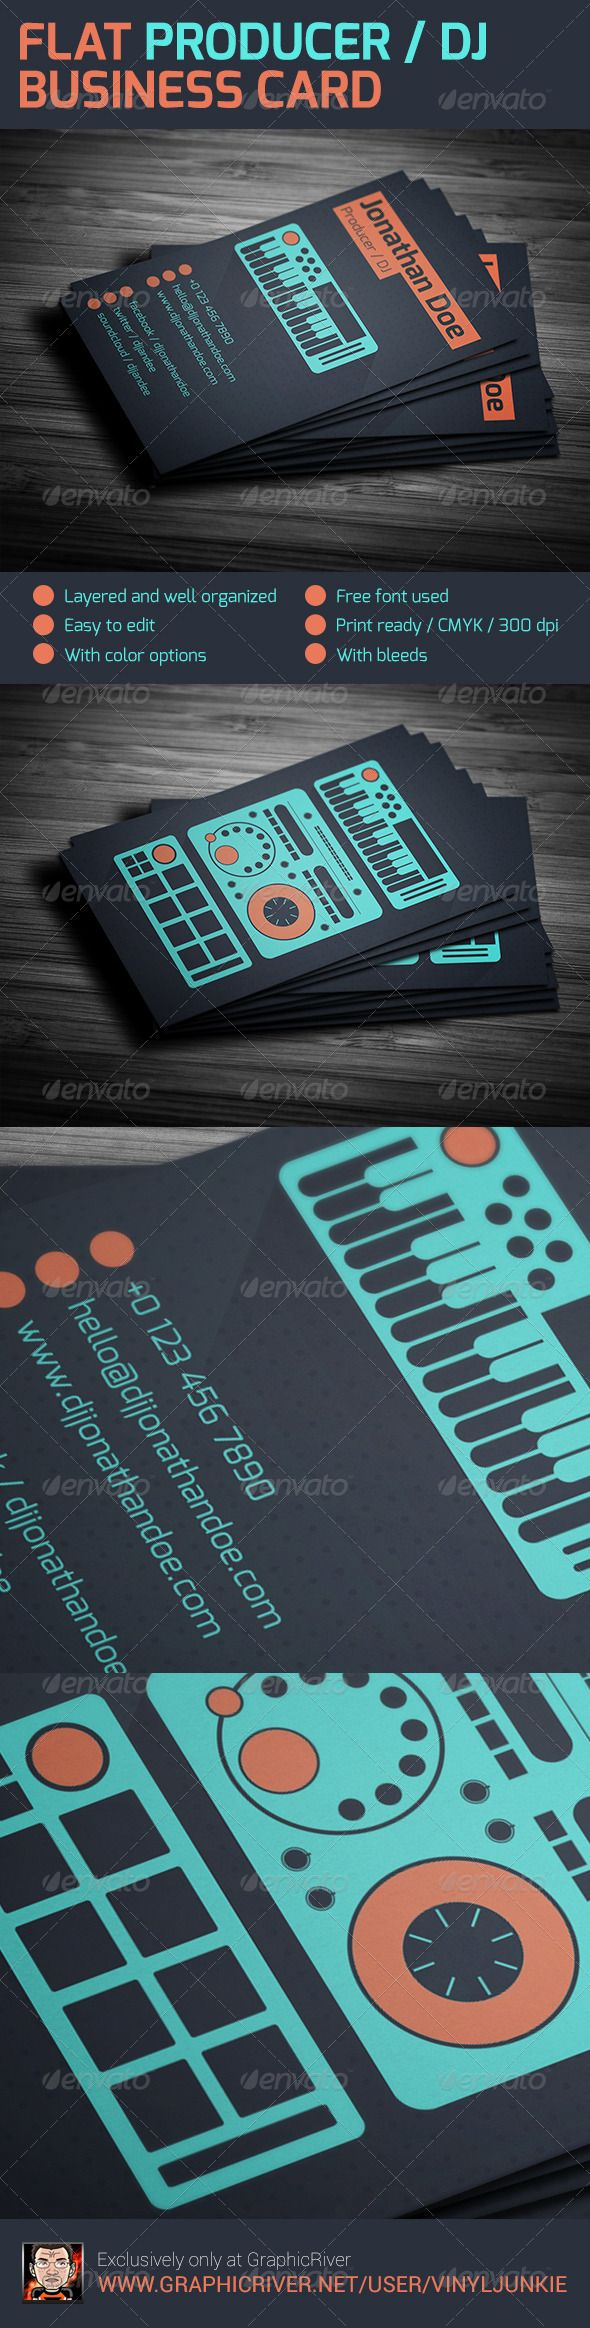 Flat producer dj business card dj business cards business cards flat producer dj business card by vinyljunkie business card template for professional dj and producers accmission Choice Image